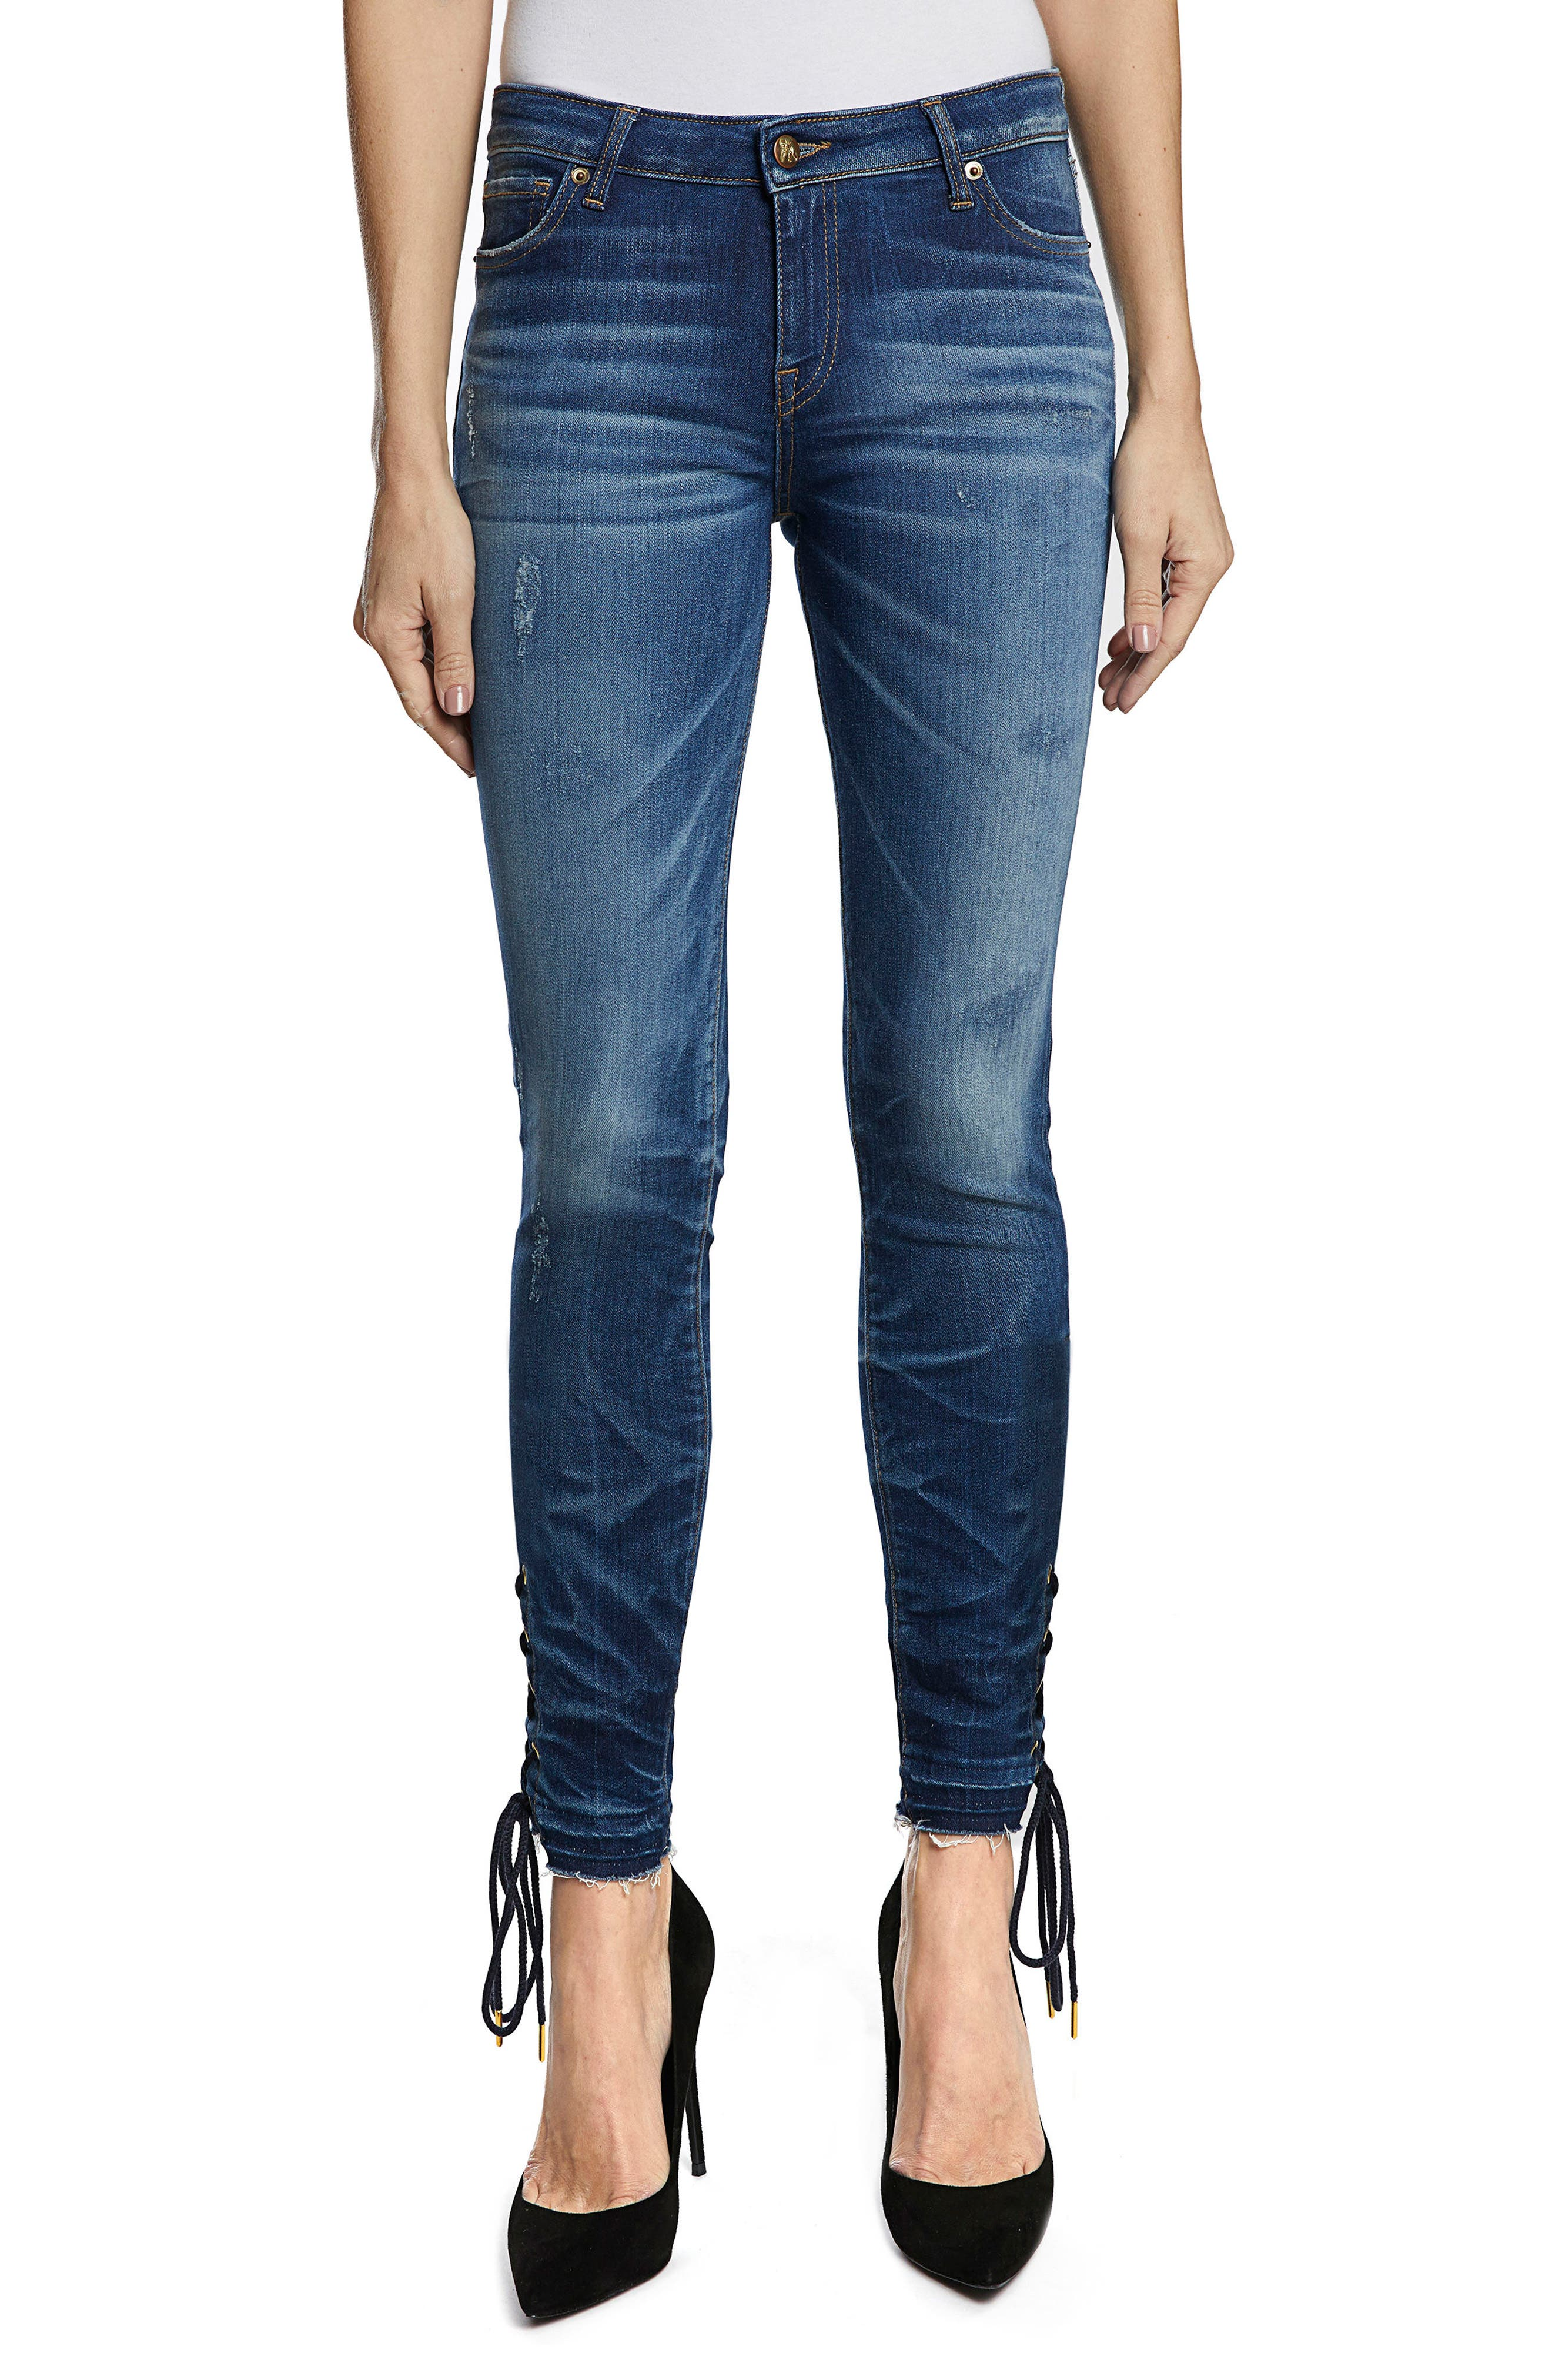 Camaro Lace-Up Ankle Skinny Jeans,                         Main,                         color, Indigo